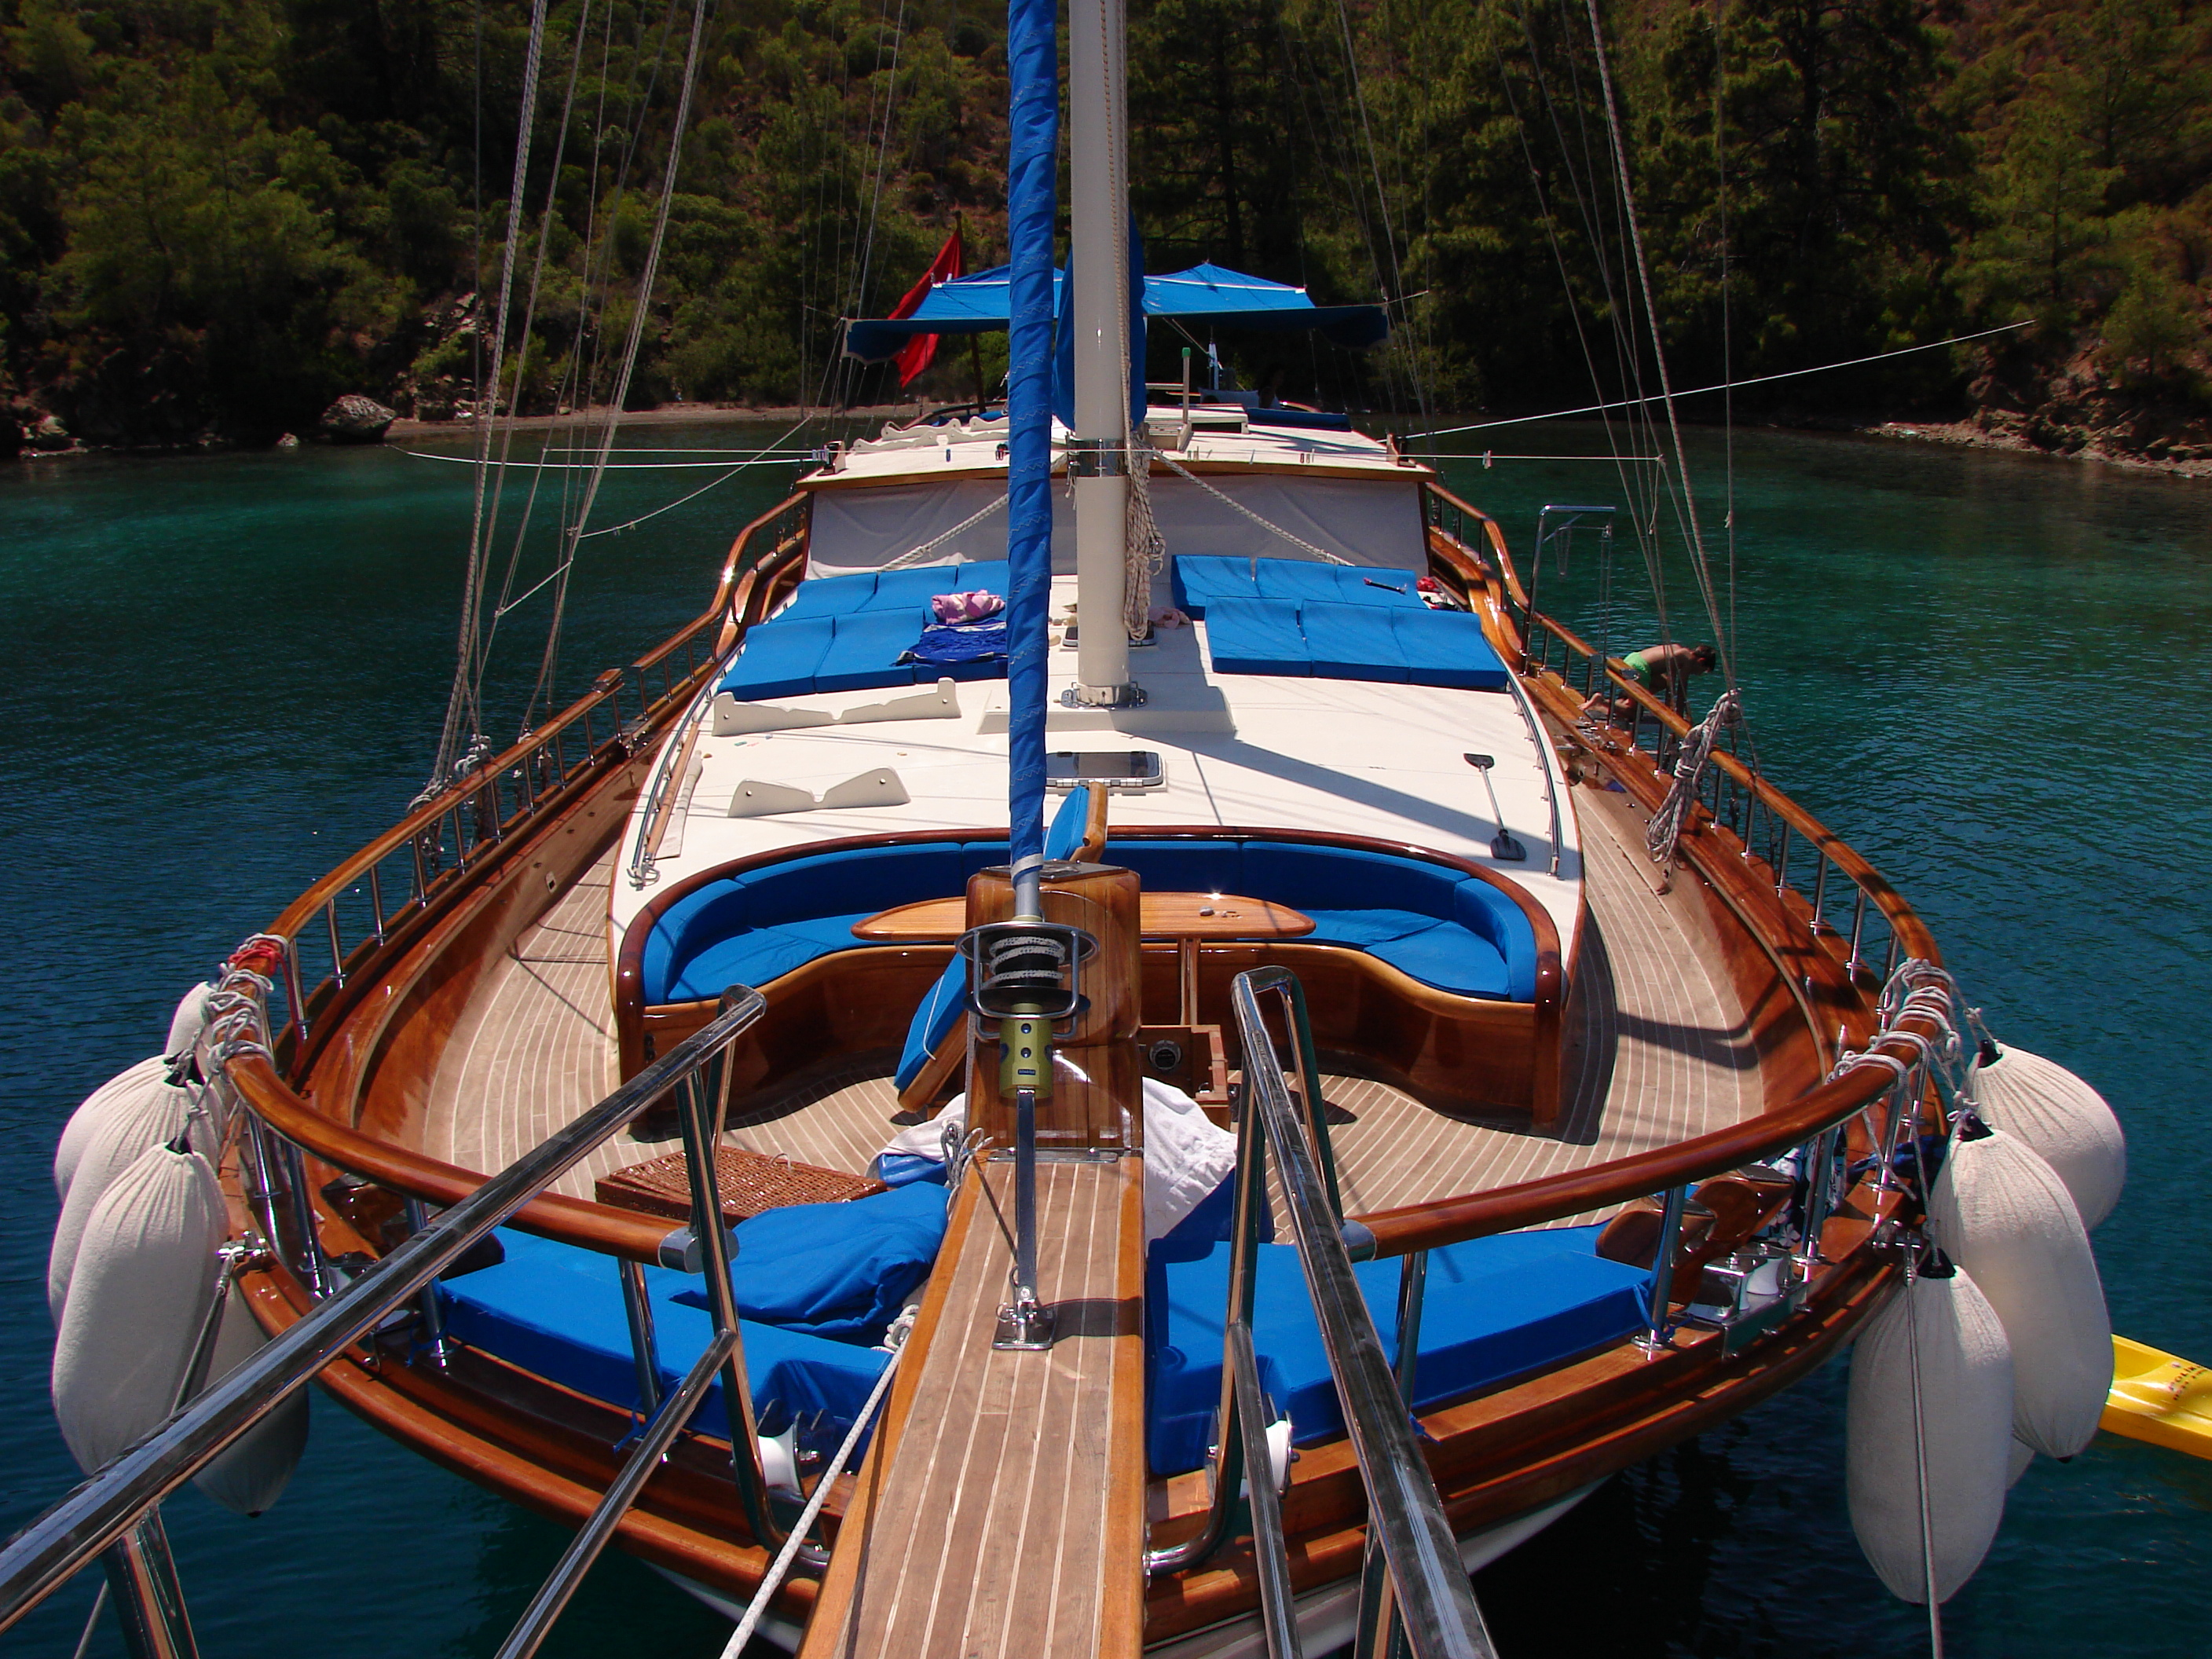 ENDERIM A,STANDARD GULETS, Yachts for Rent, Yacht Charter, Yacht Rental